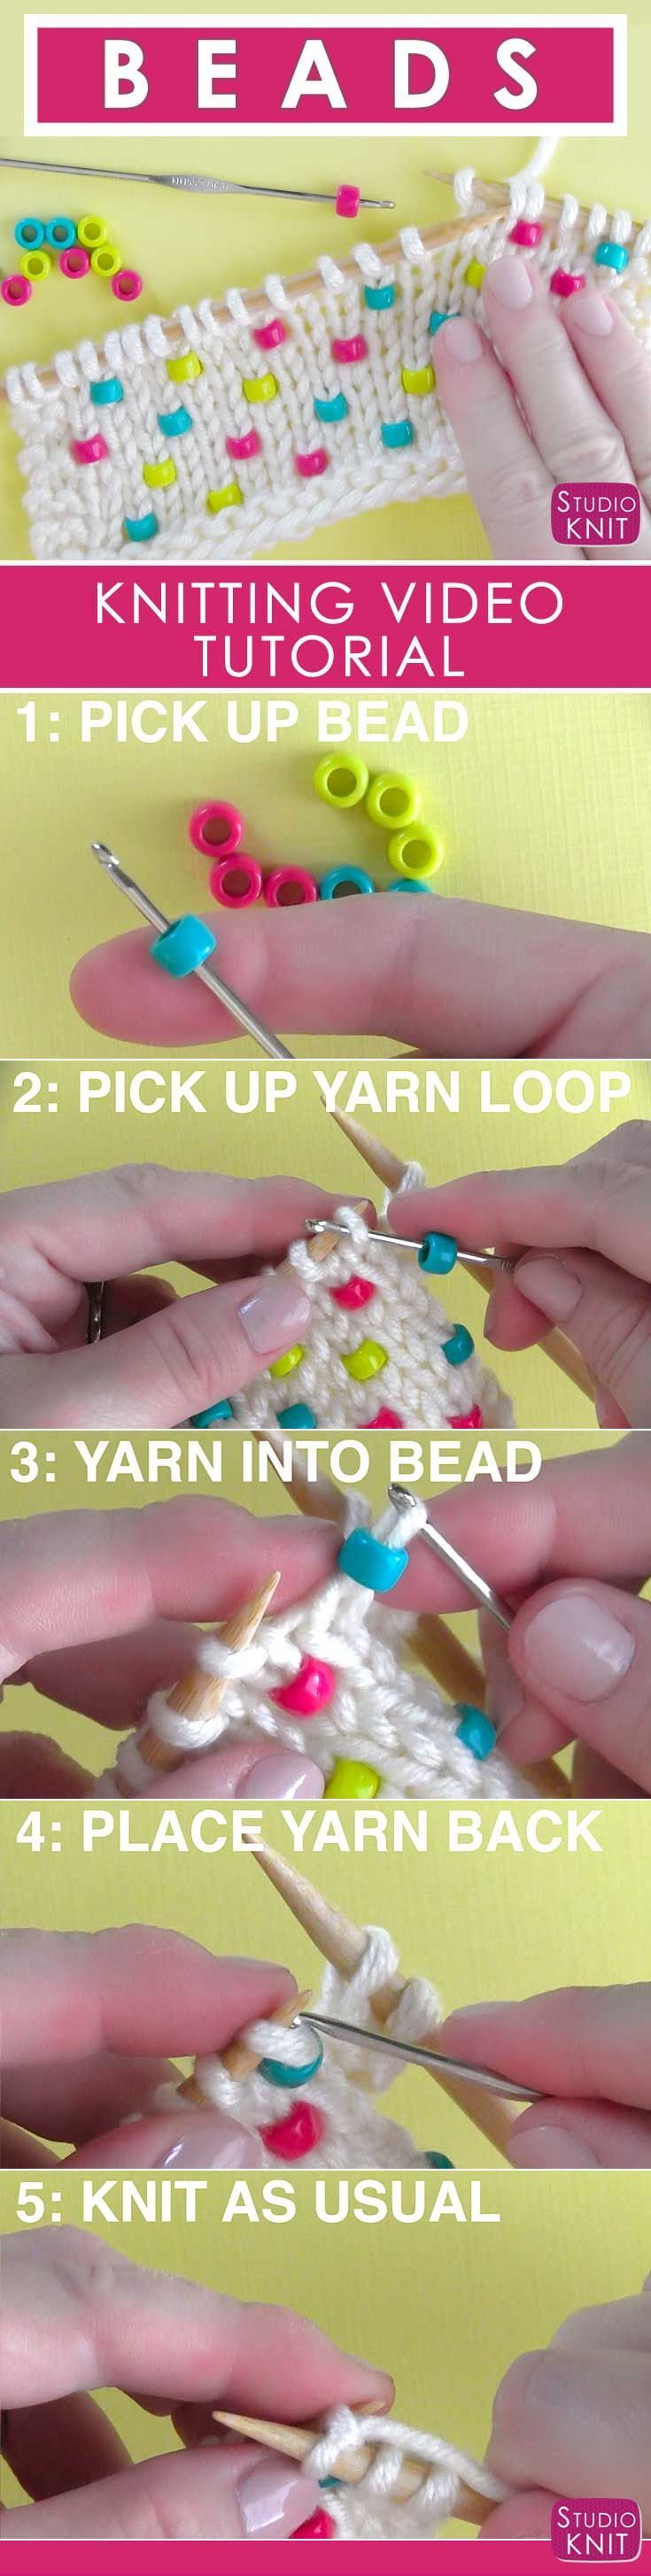 I'm learning how to Knit Beads into any project with Studio Knit - Super Easy! #StudioKnit #knittingtechnique #beads